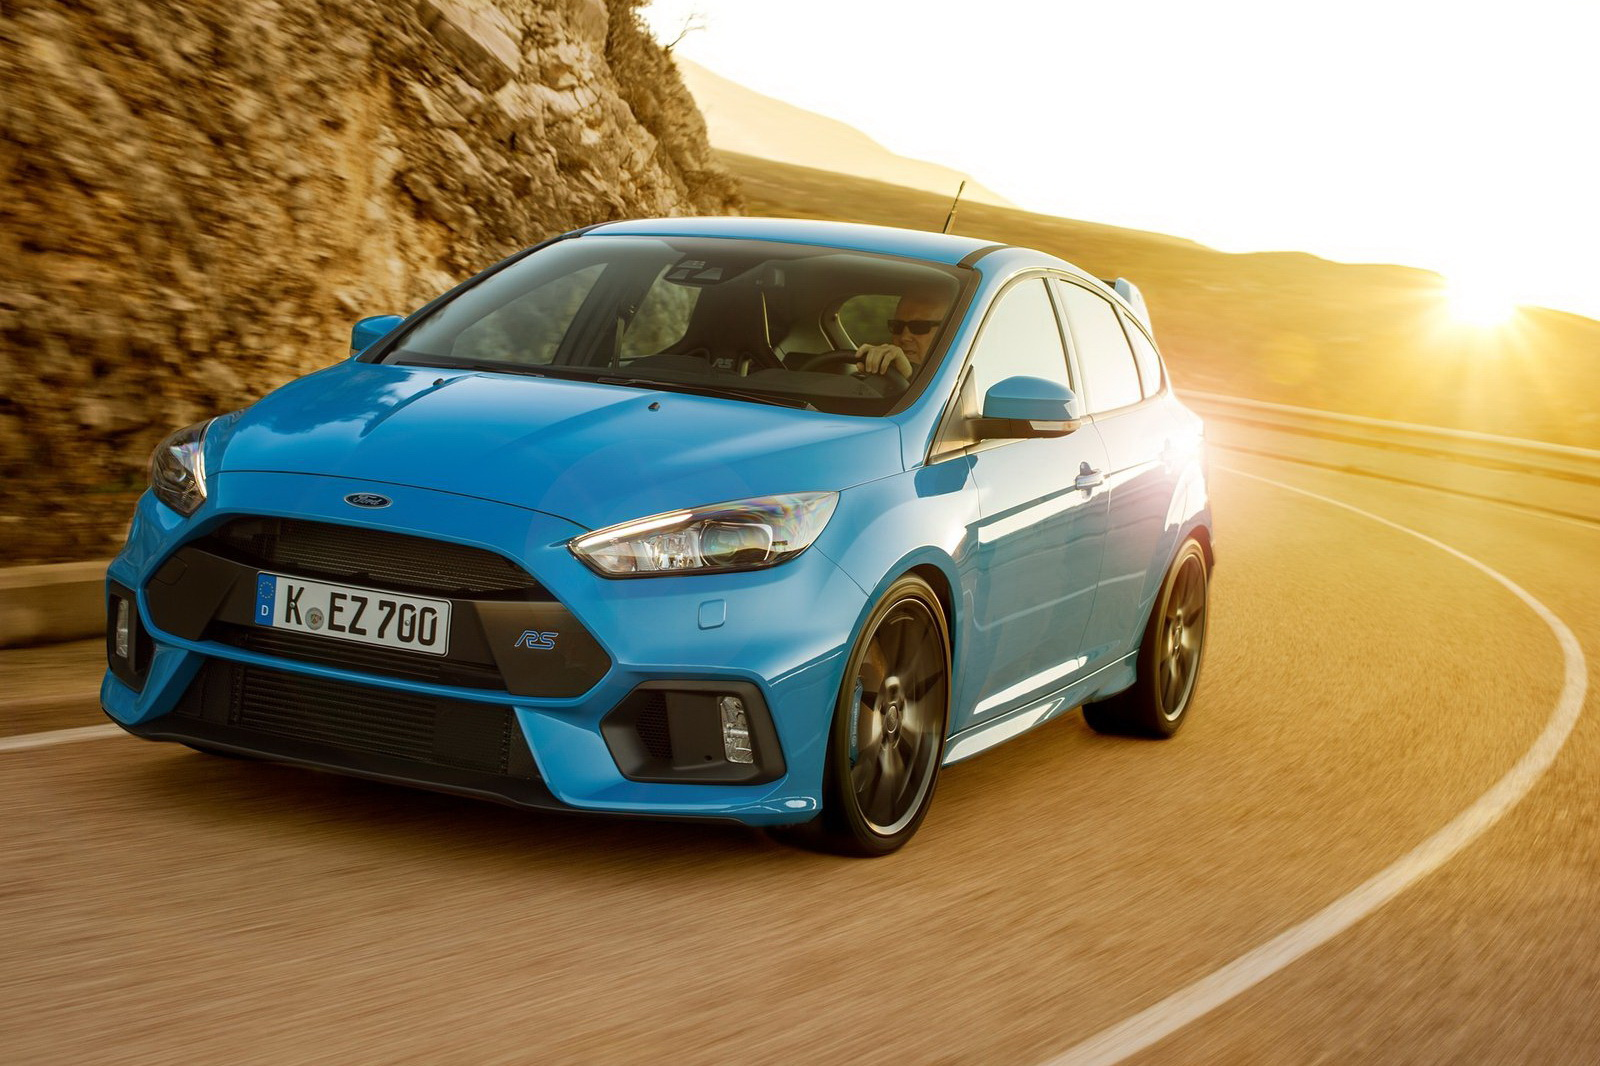 Ford-Focus_RS-2016-1600-06.jpg